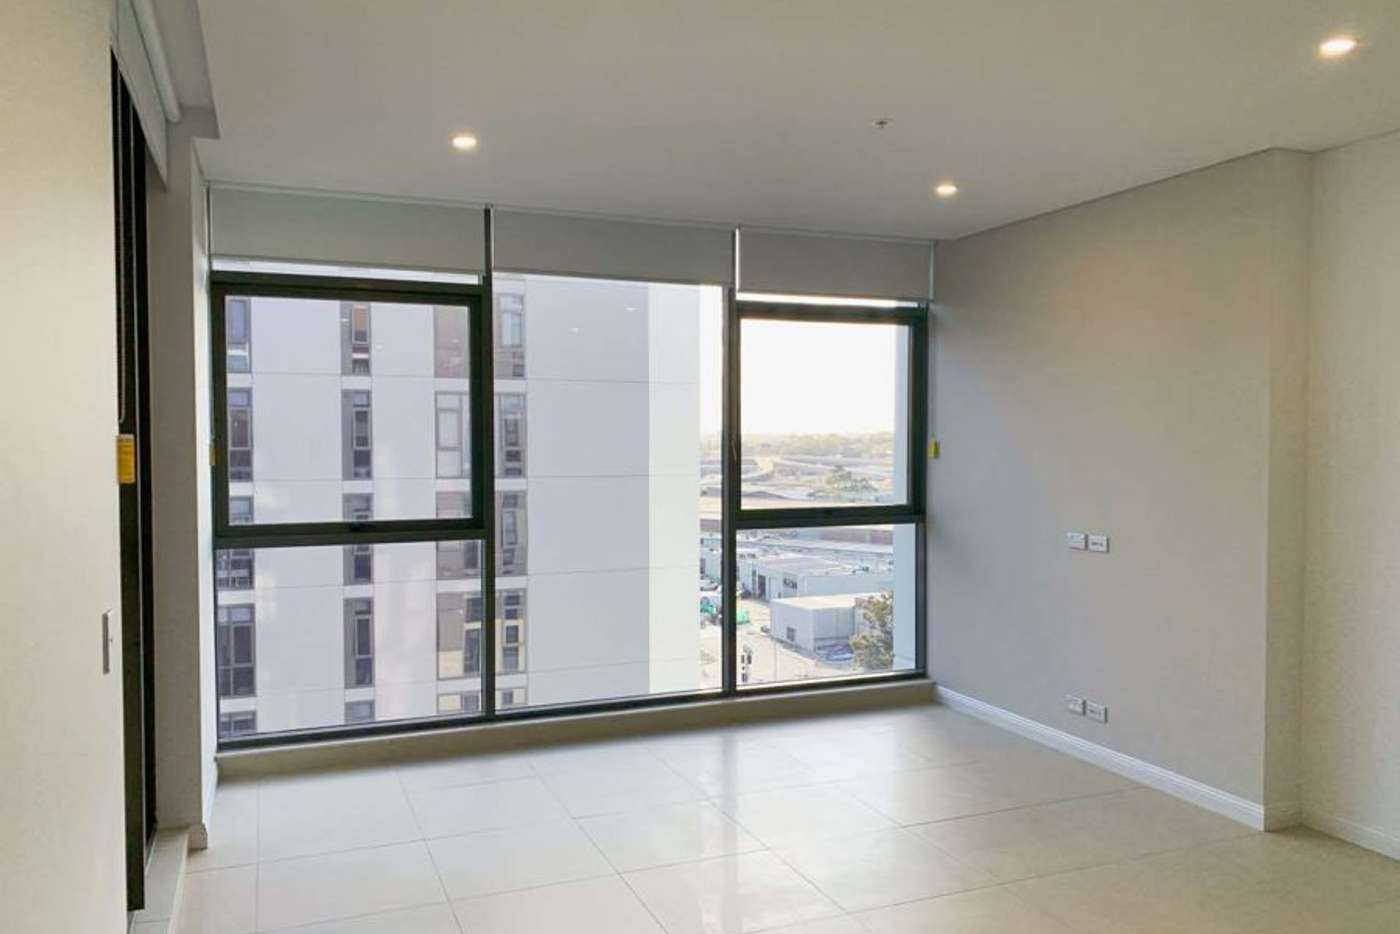 Main view of Homely apartment listing, 260 Coward St, Mascot NSW 2020